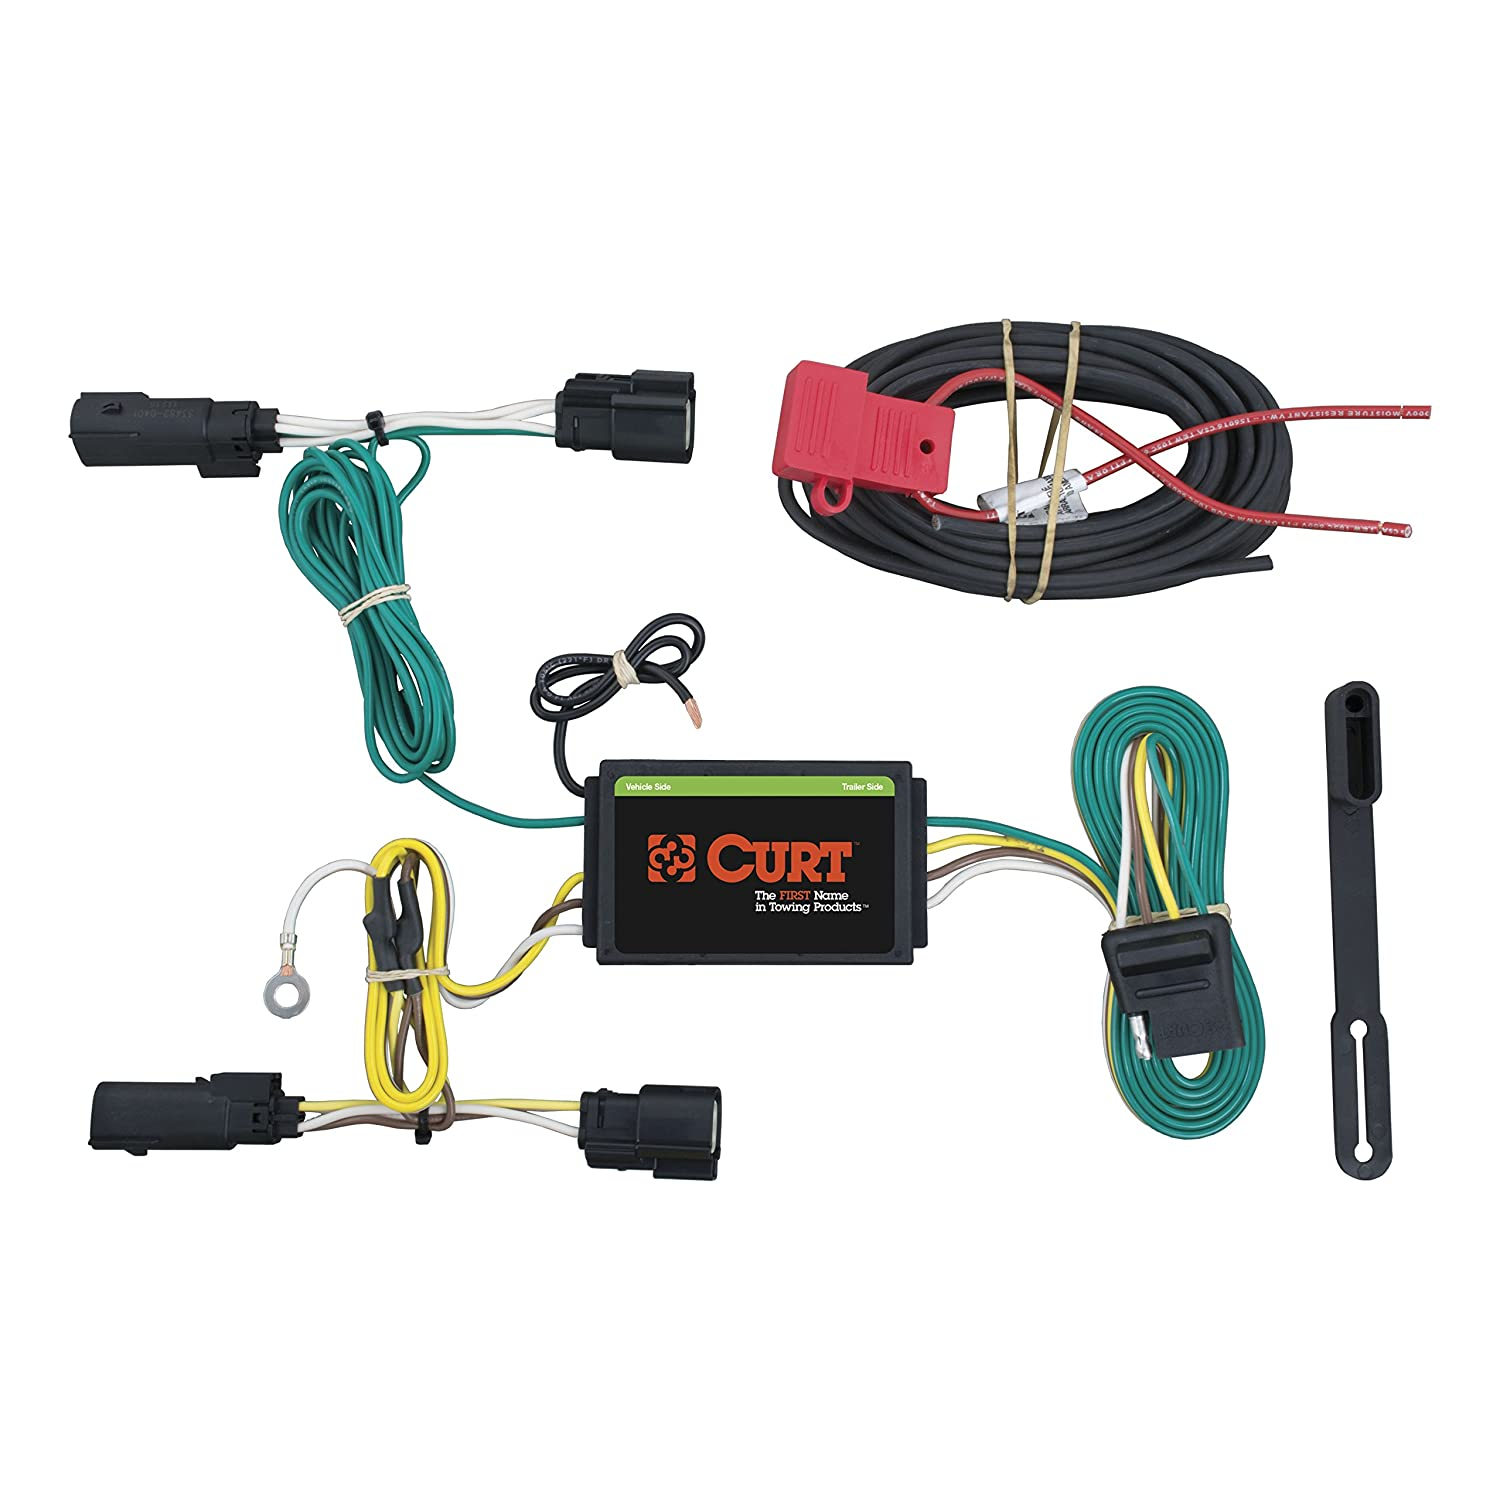 81vy5qvJlPL._SL1500_ amazon com curt 56249 custom wiring harness automotive wiring harness for trailer at virtualis.co